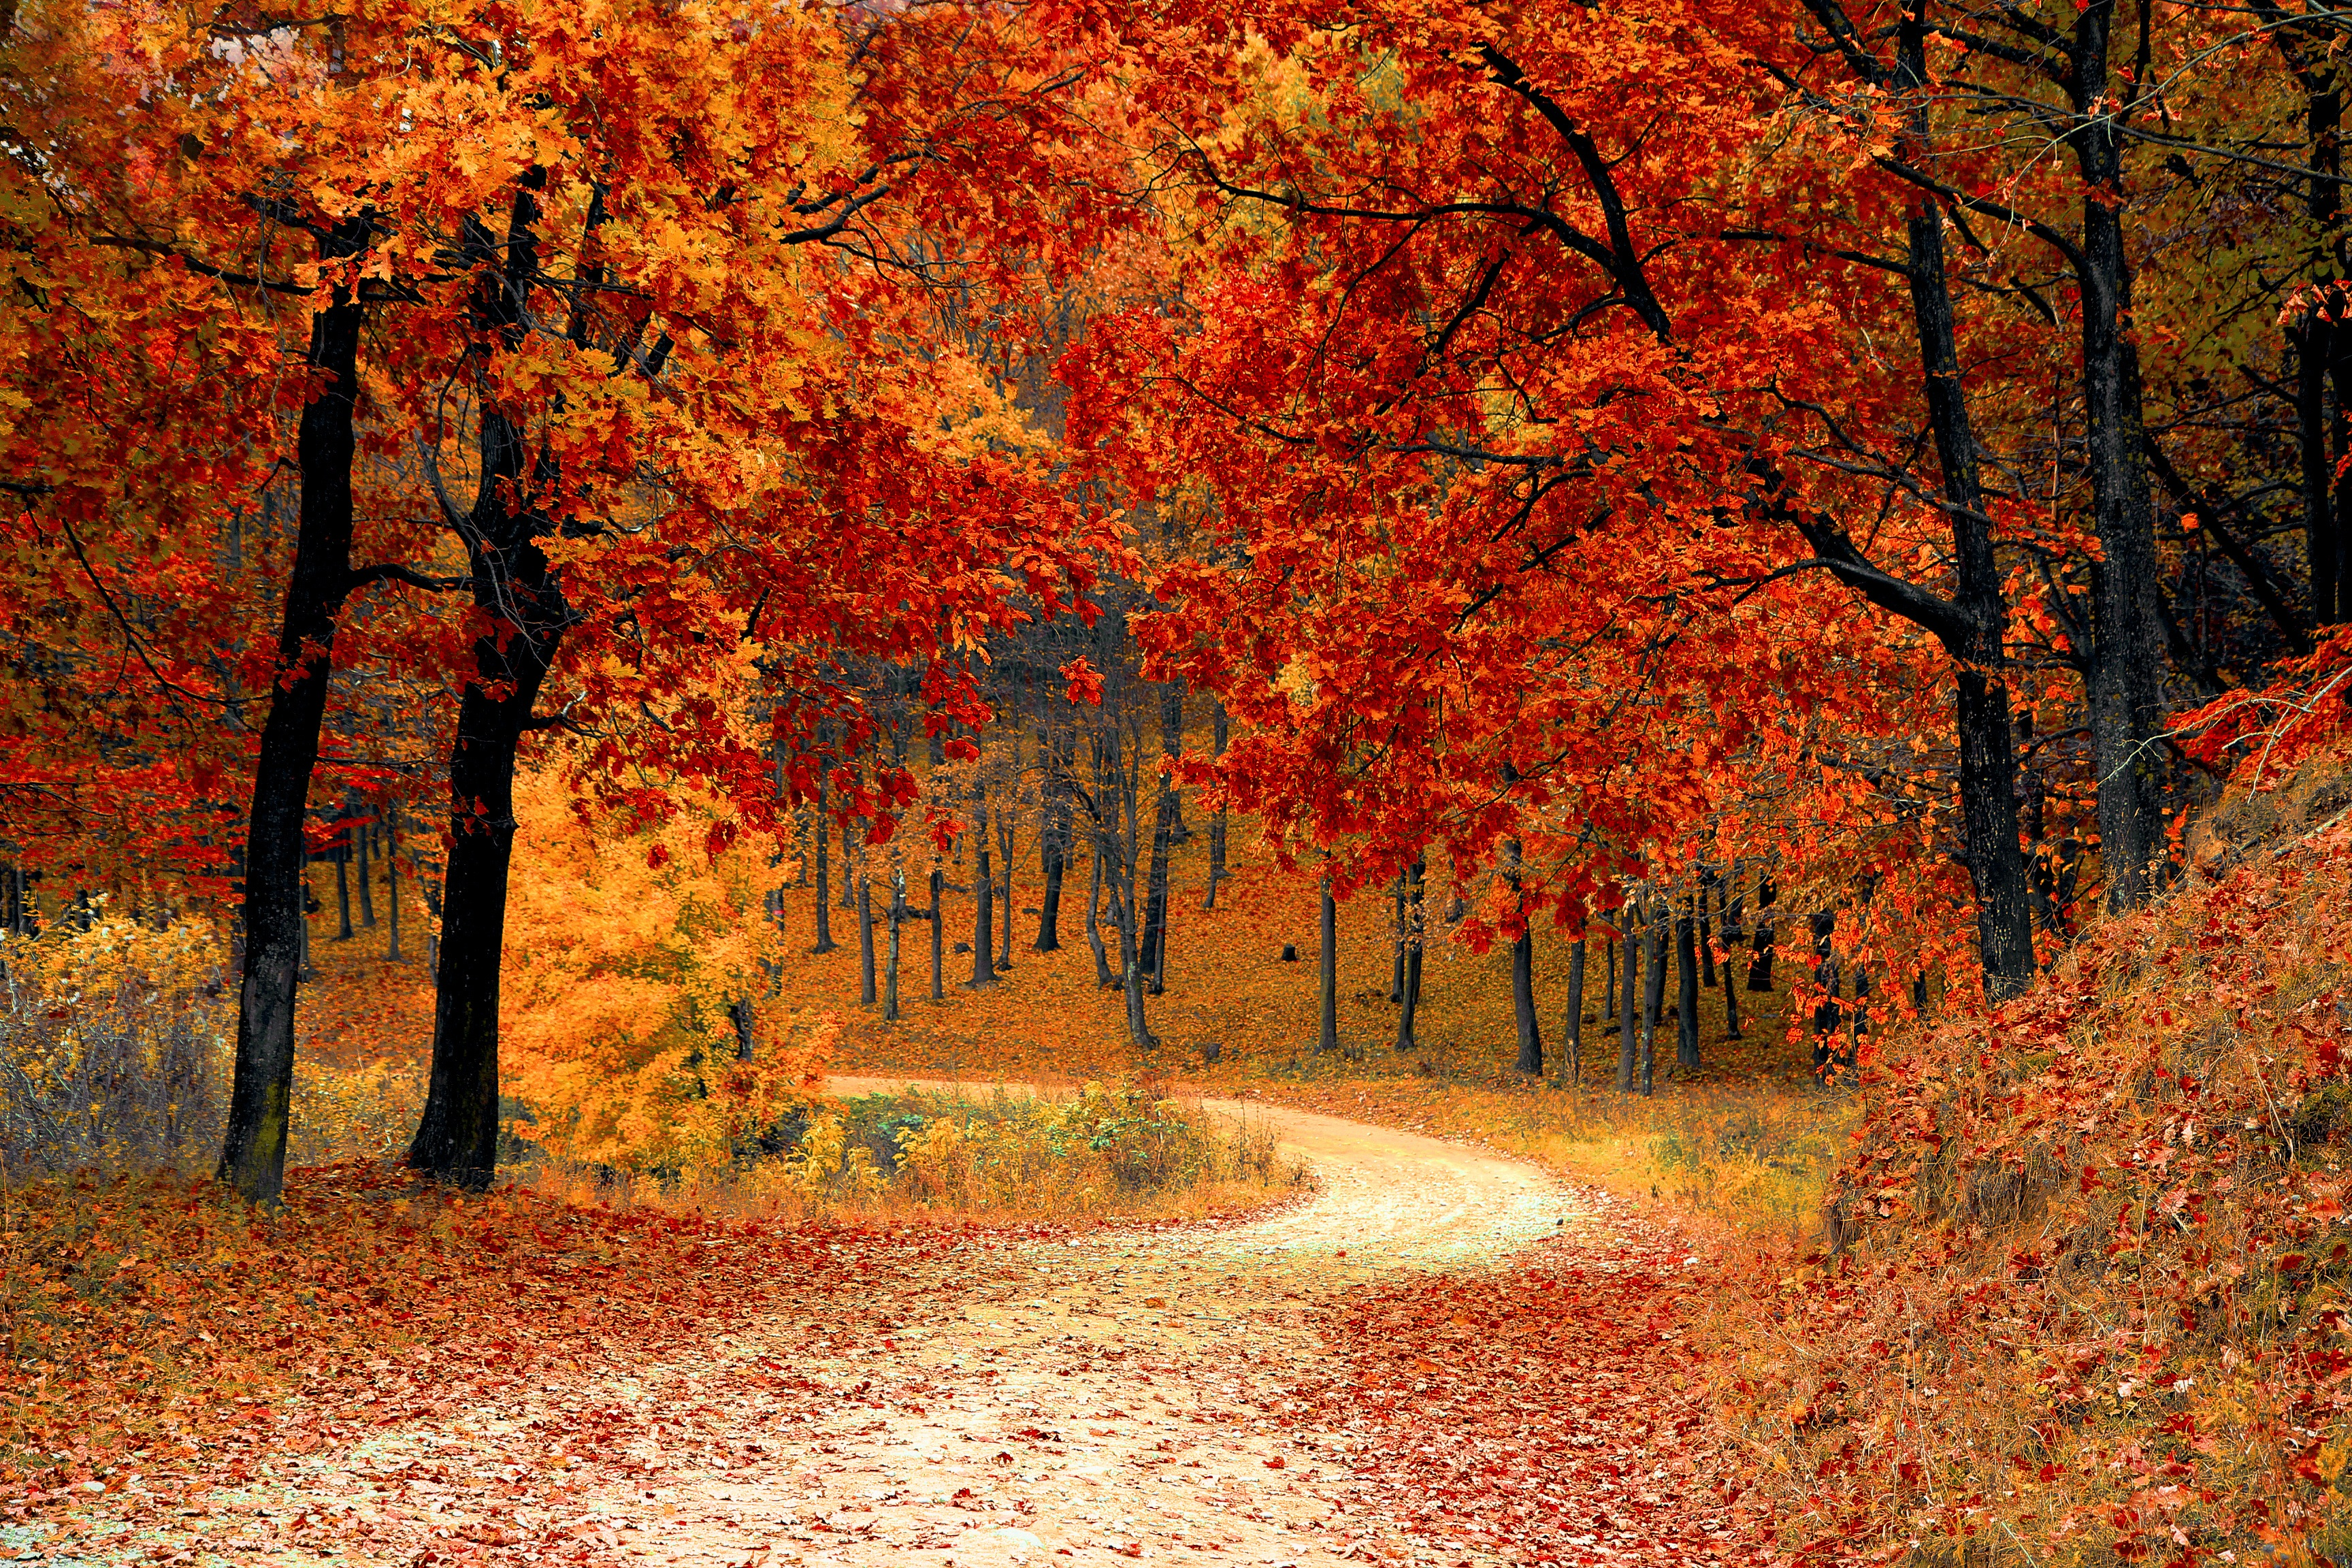 Fall for these Autumn safety tips